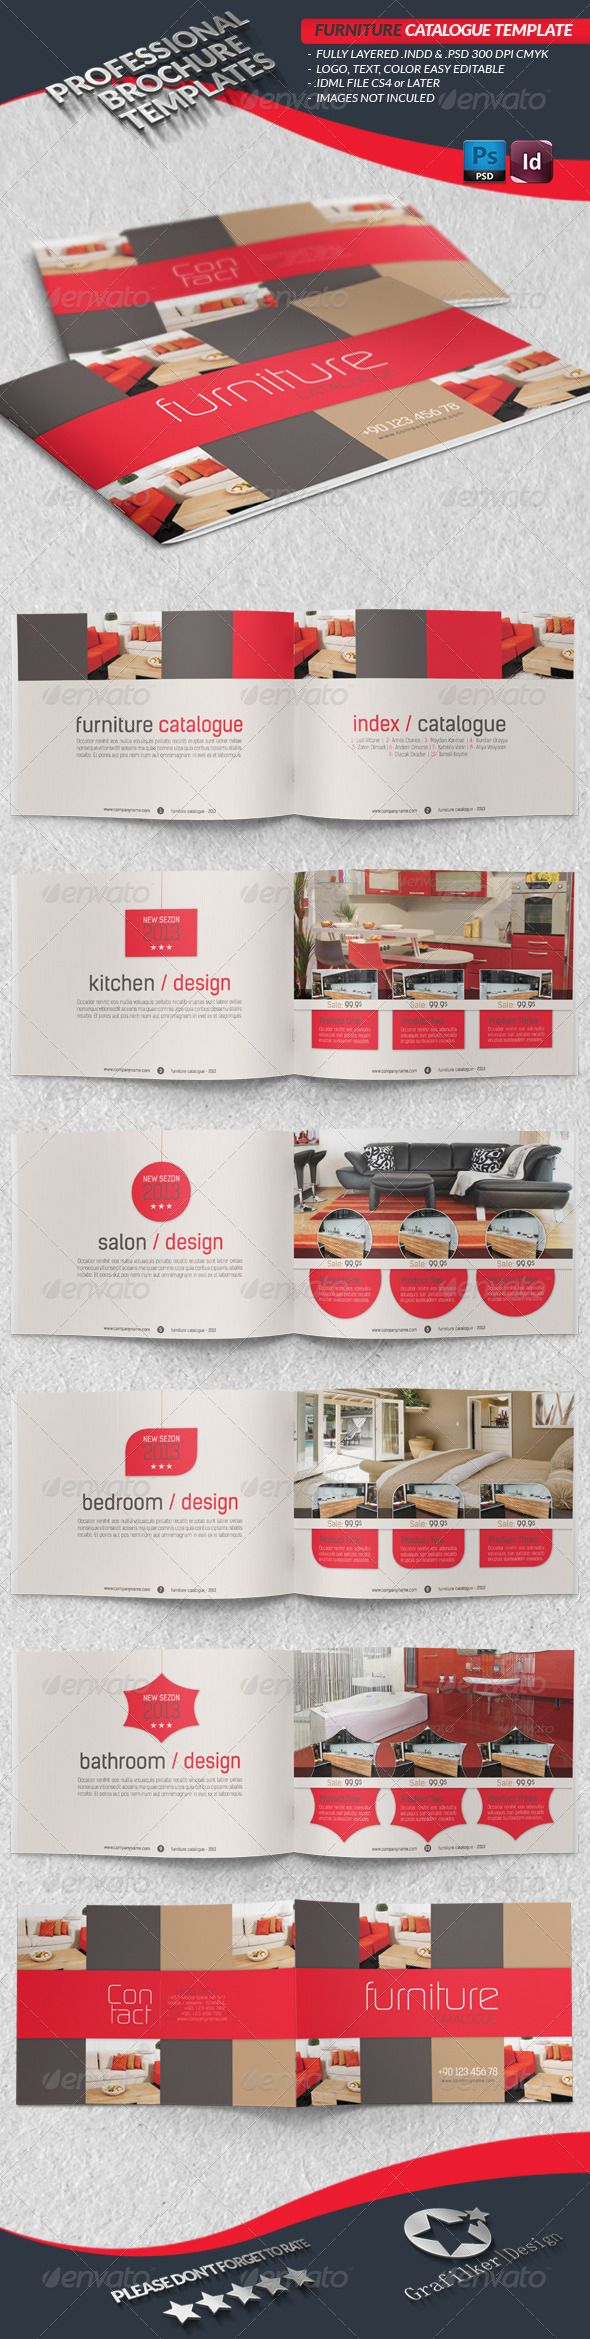 Furniture Catalogue Template - Catalogs Brochures